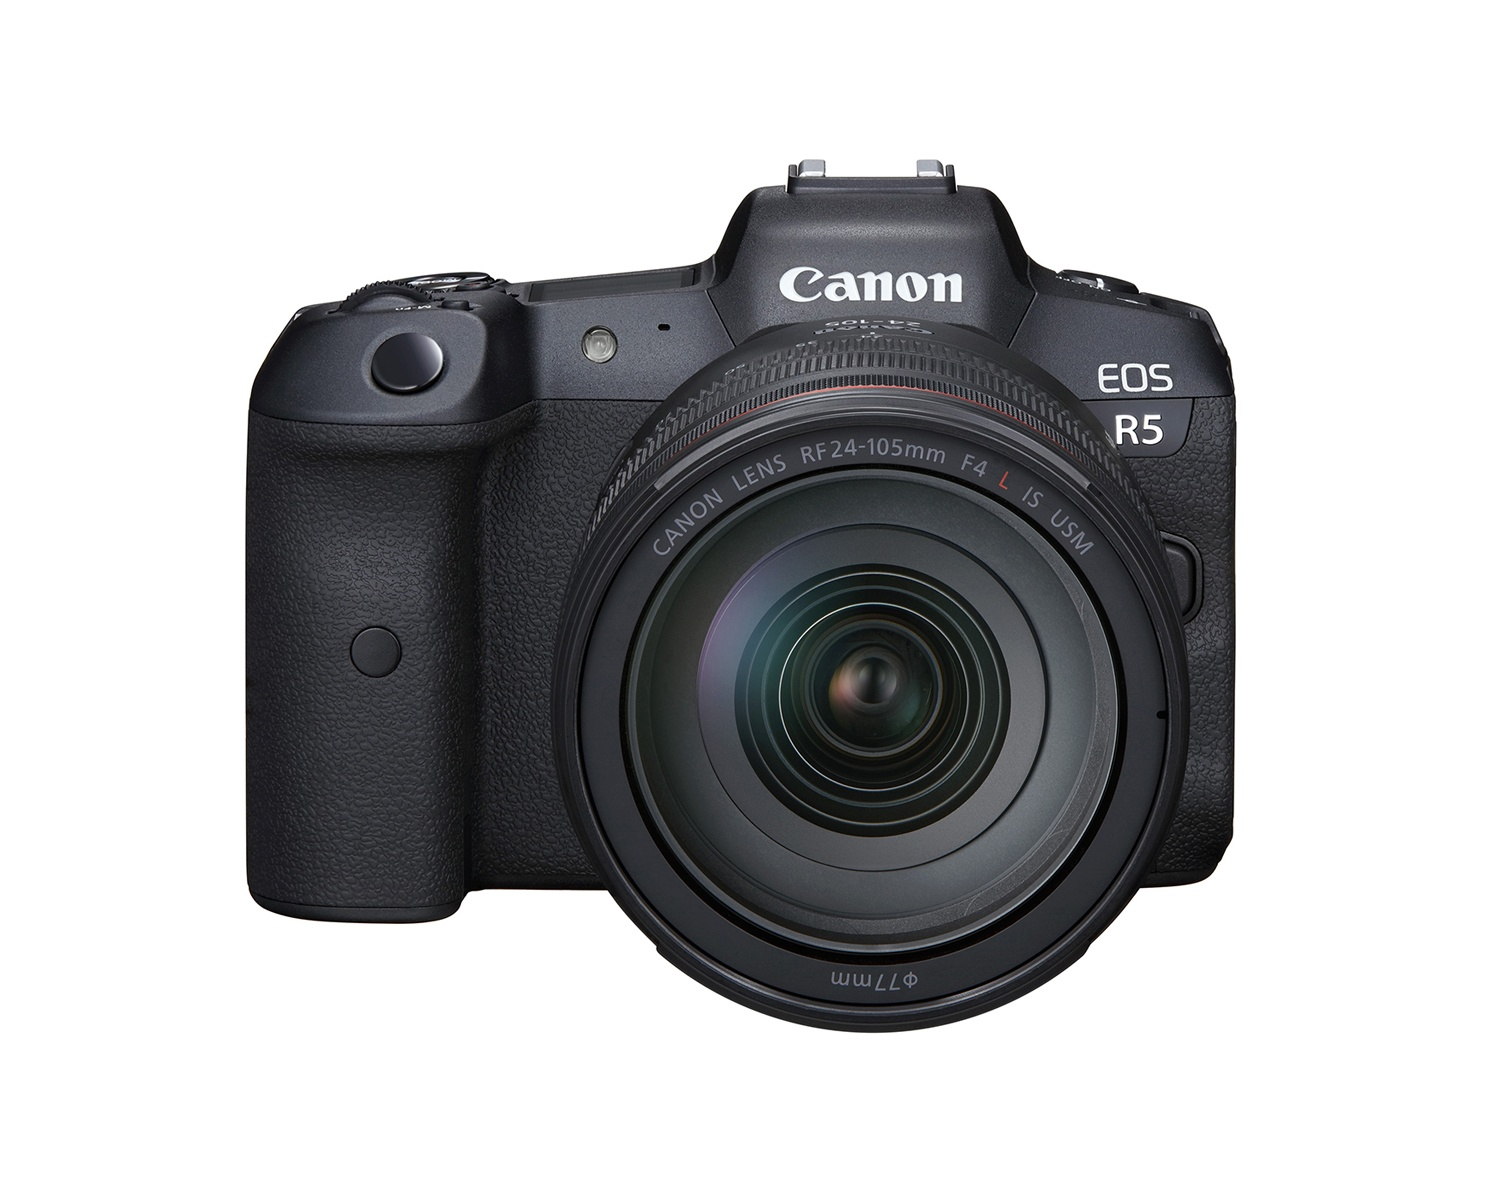 Canon EOS R5 Firmware Update Sony A7s Iii